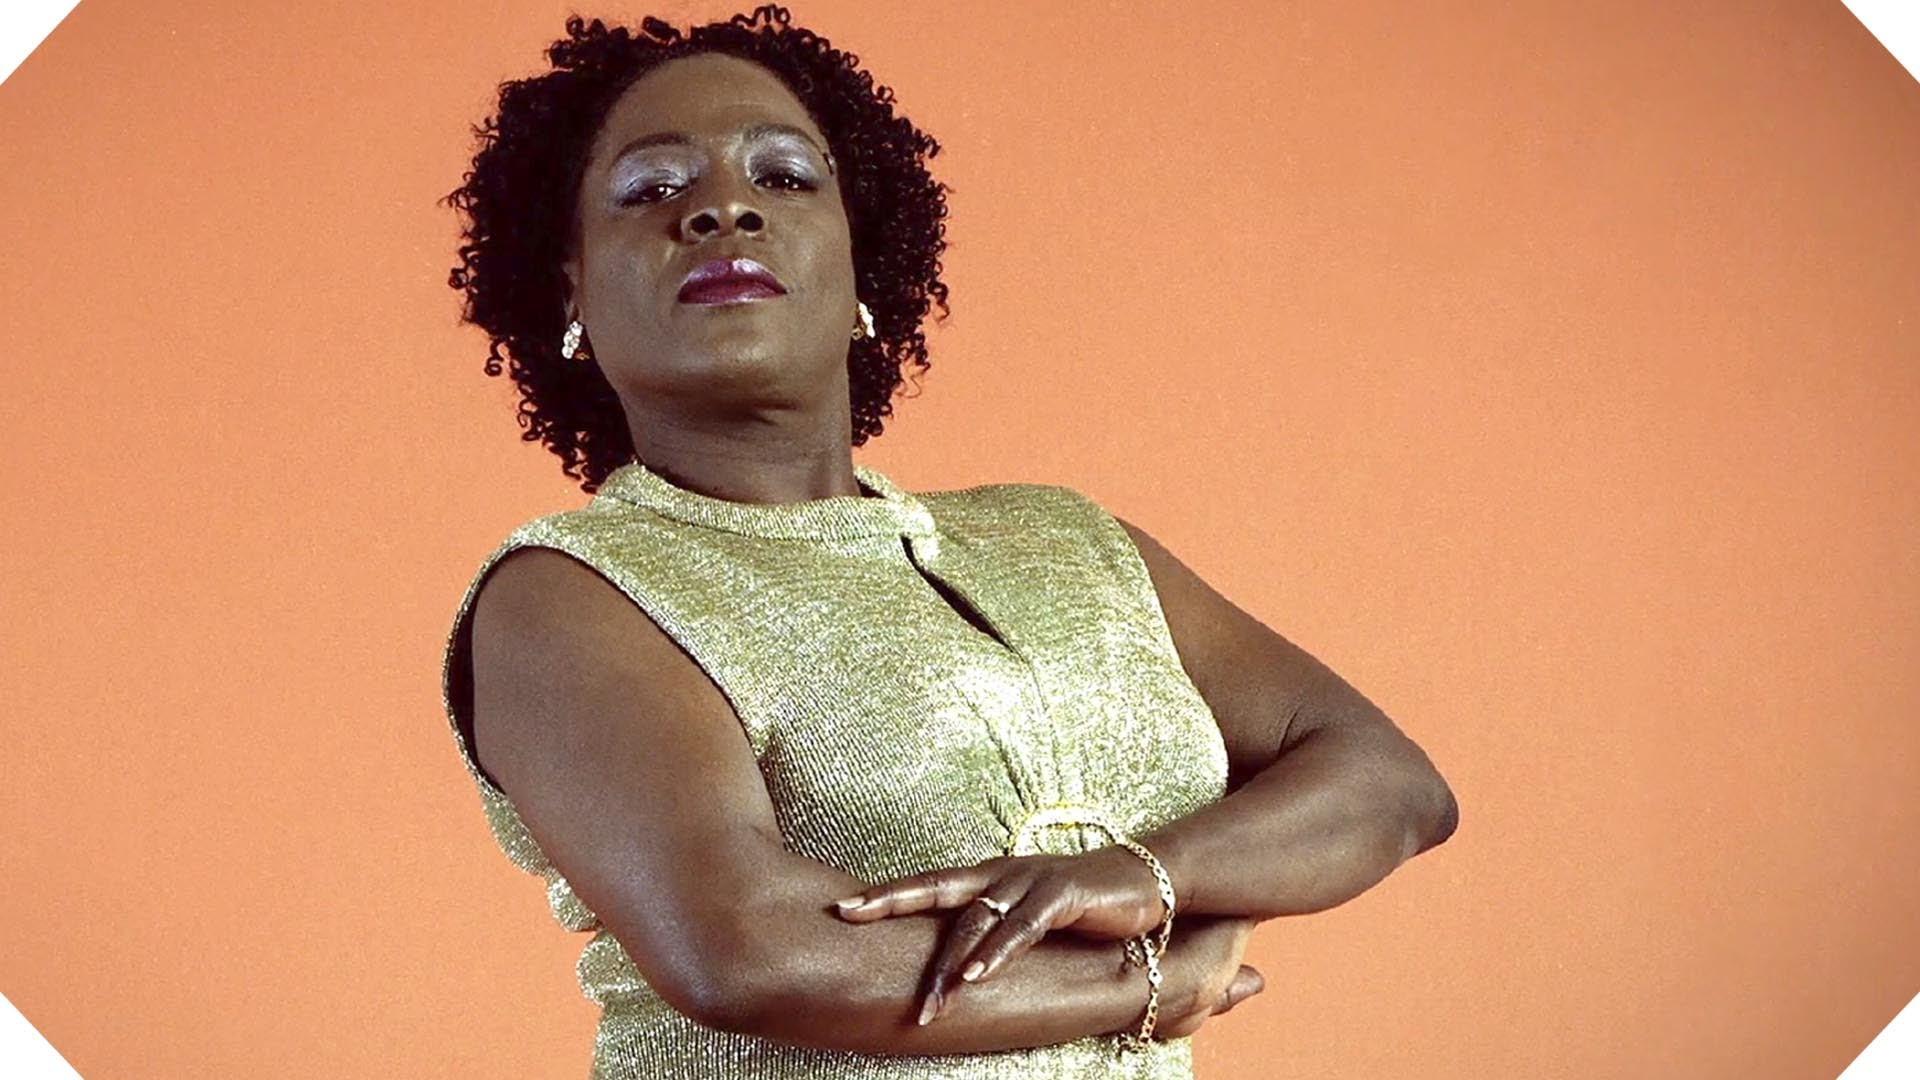 miss sharon jones3